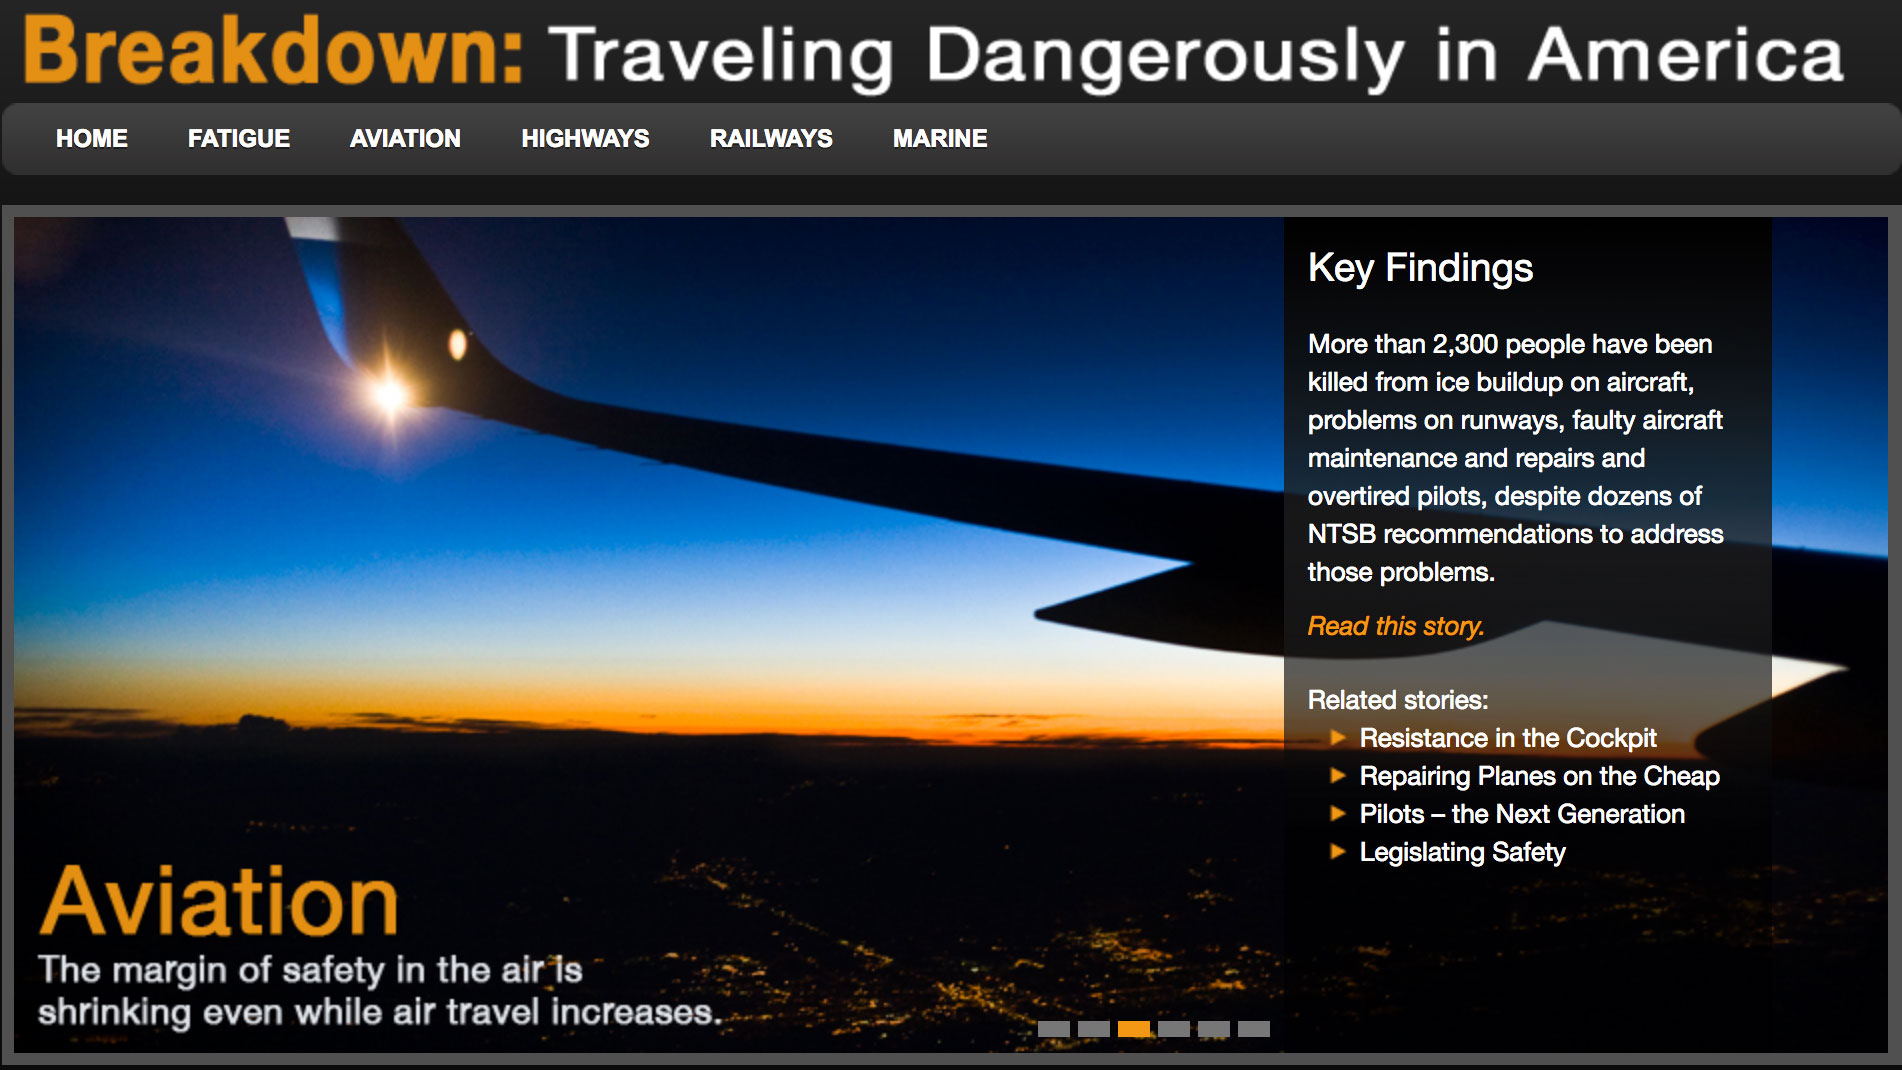 Breakdown: Traveling Dangerously in America